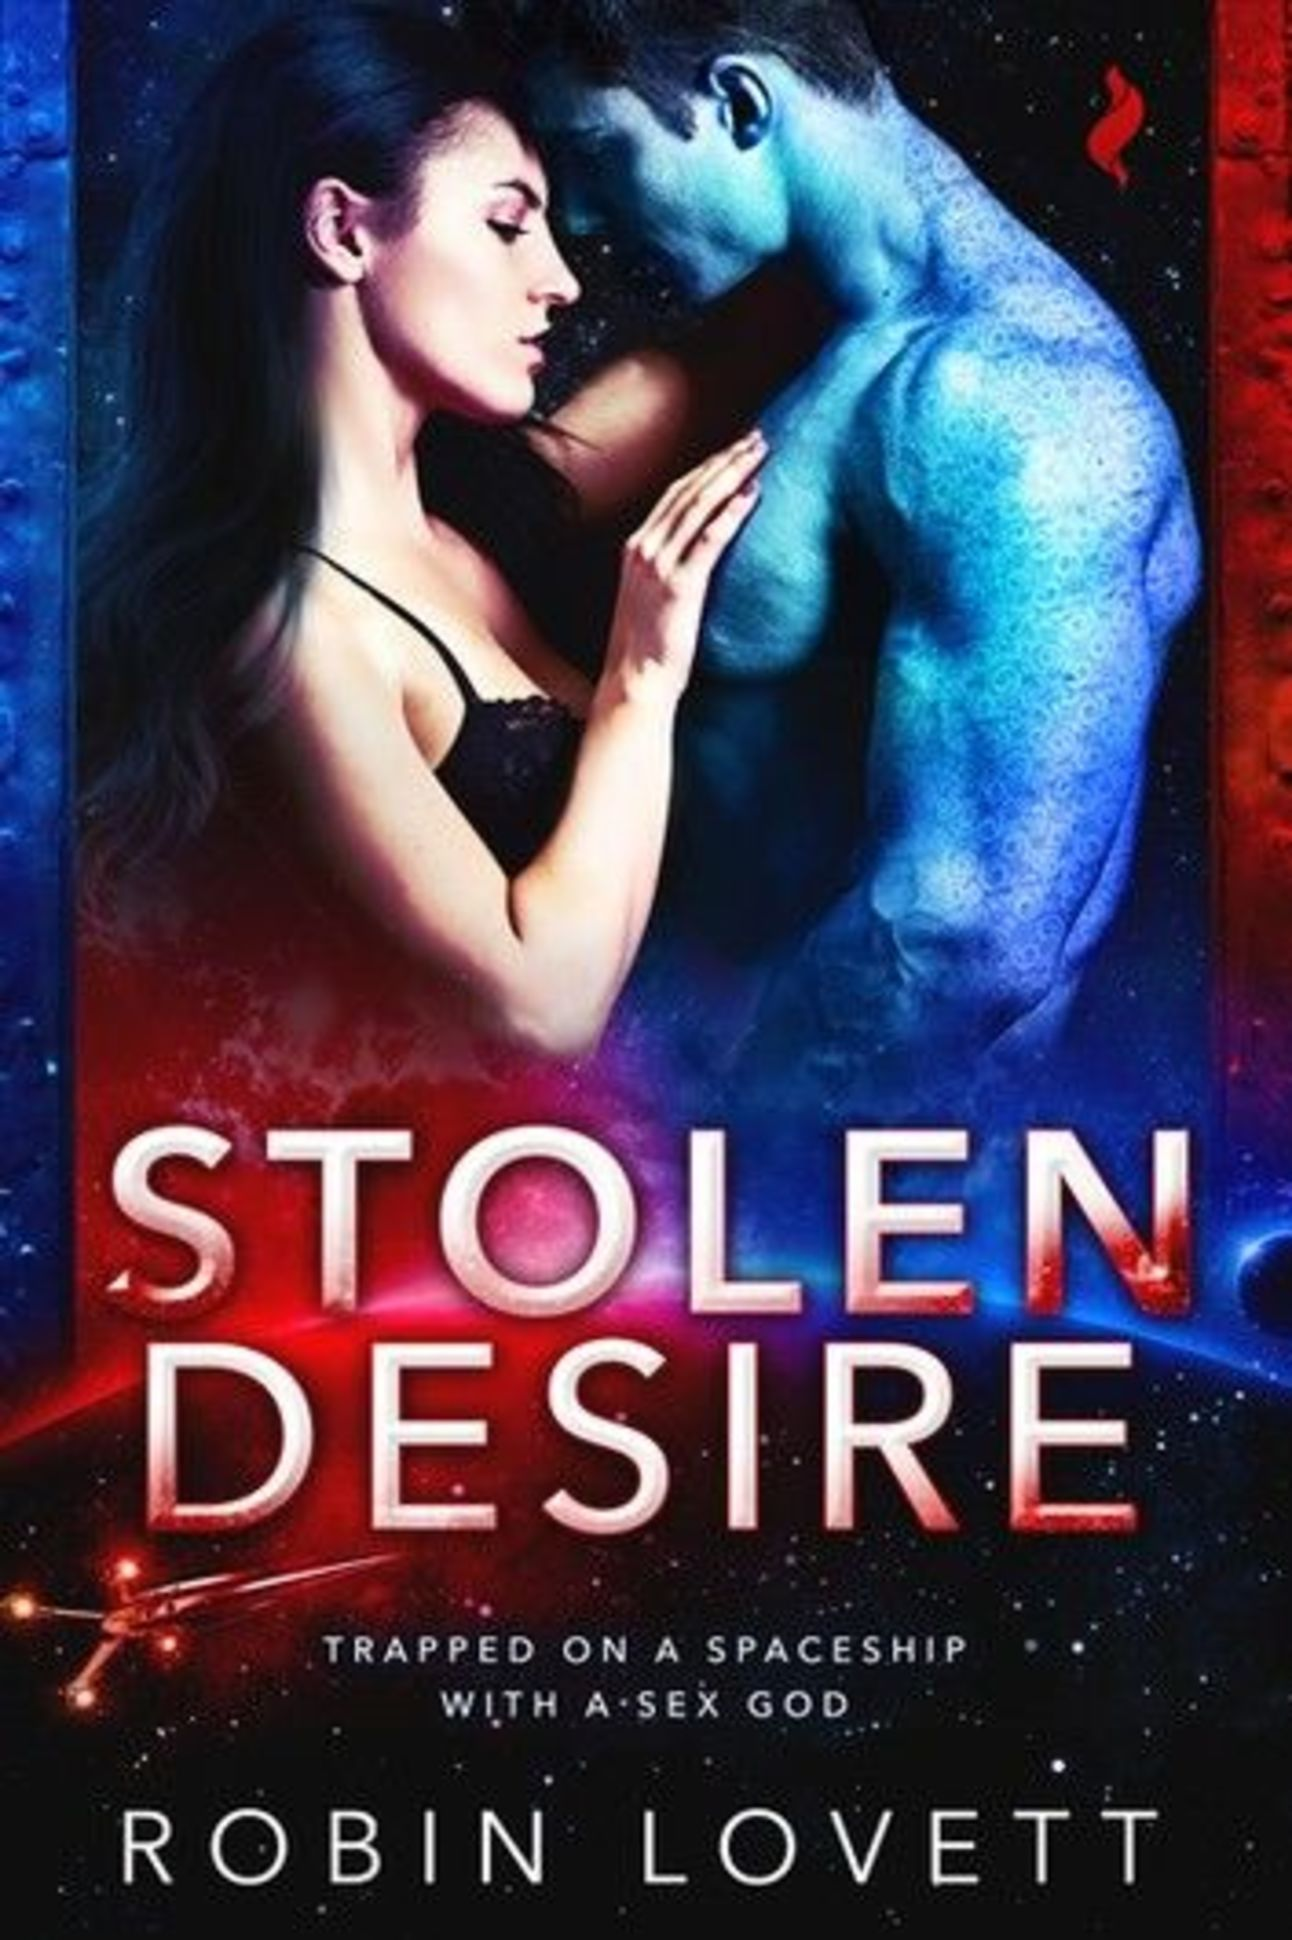 10 sci-fi and fantasy romances to make your July even hotter